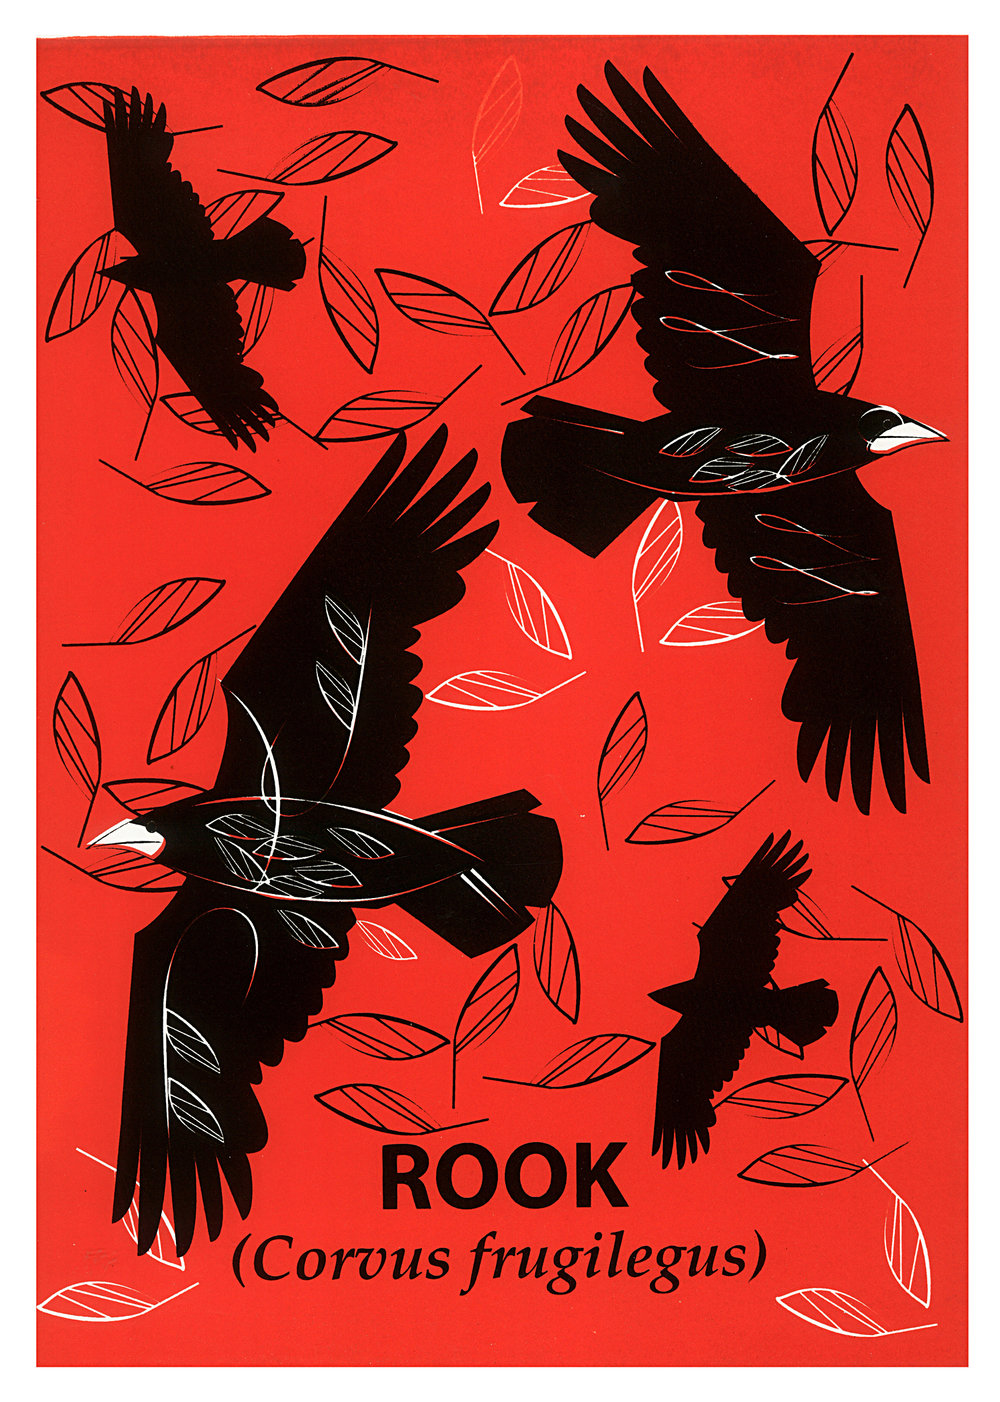 Limited Edition Rook Screenprint